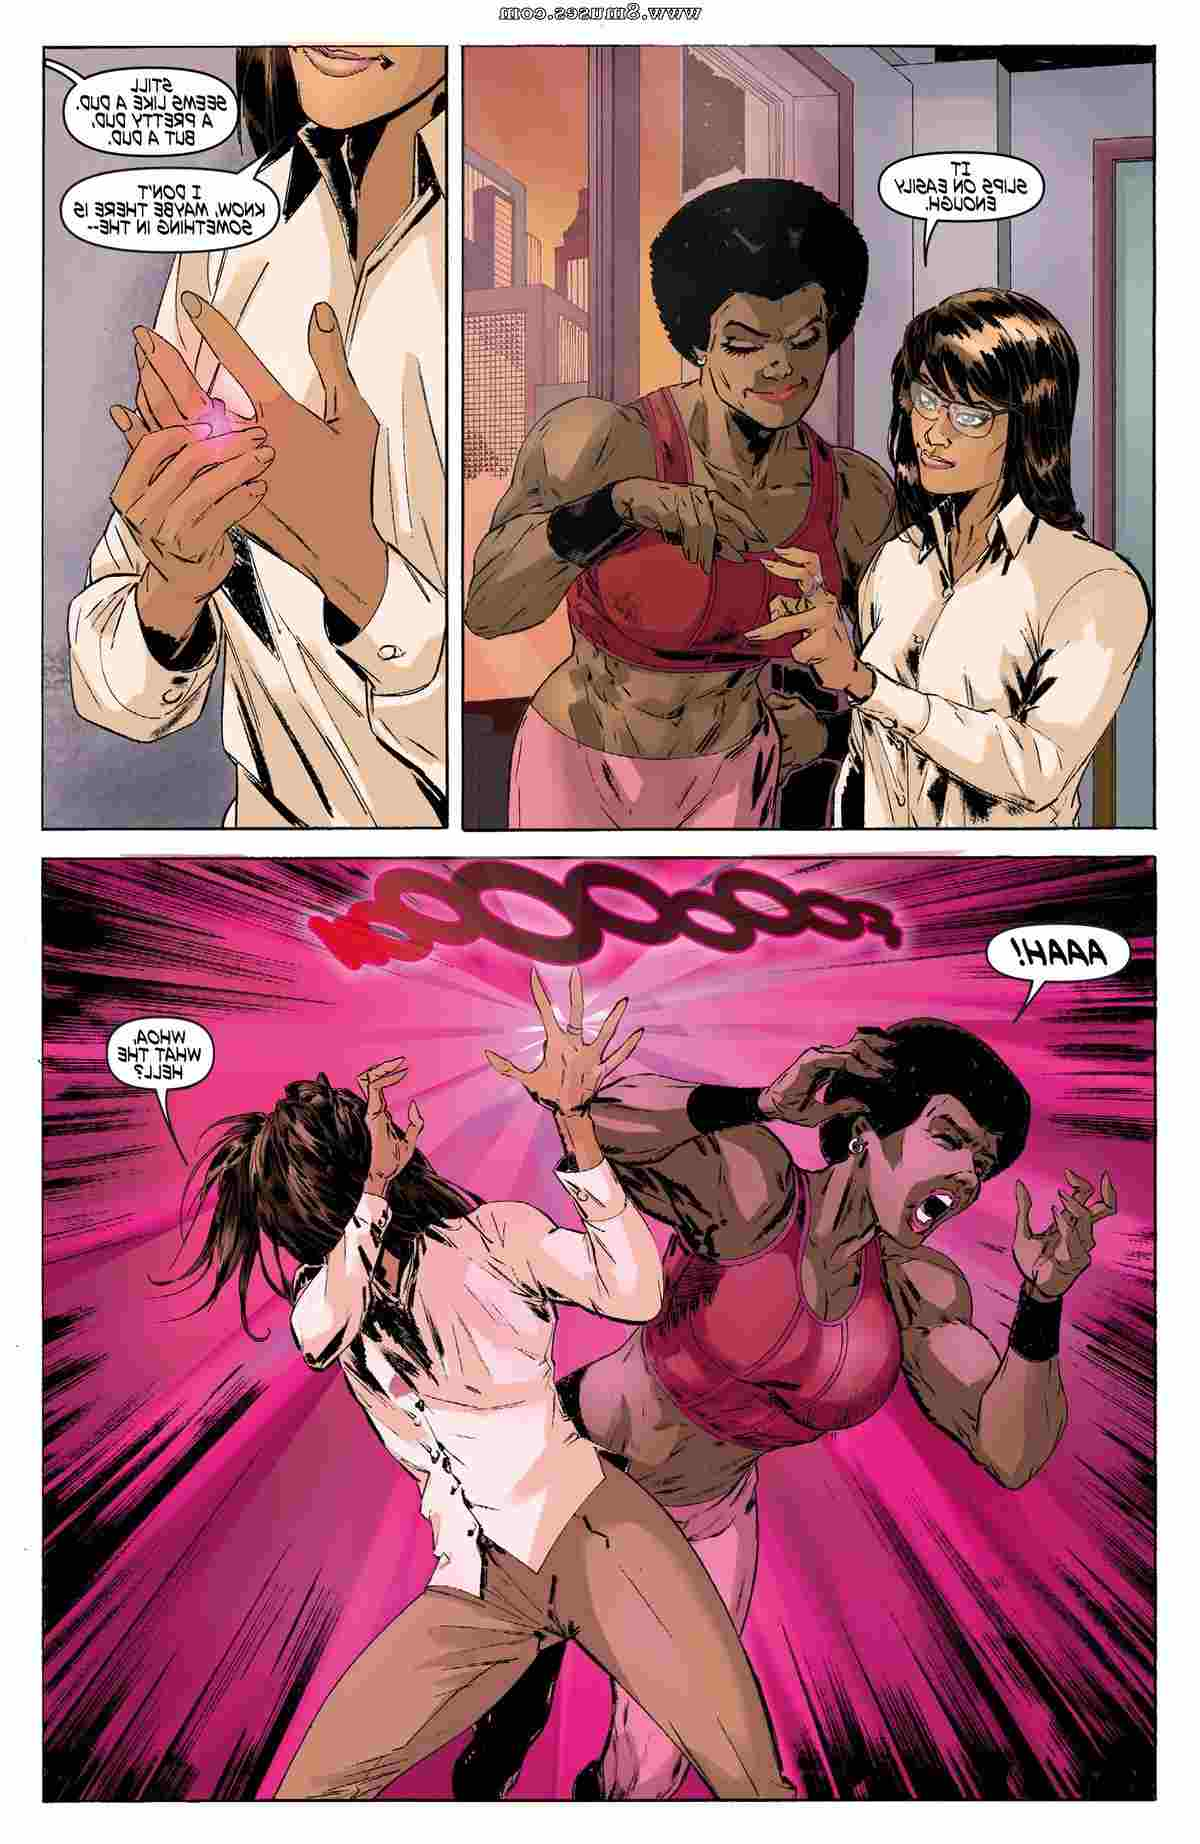 MuscleFan-Comics/Leveling-The-Field Leveling_The_Field__8muses_-_Sex_and_Porn_Comics_6.jpg